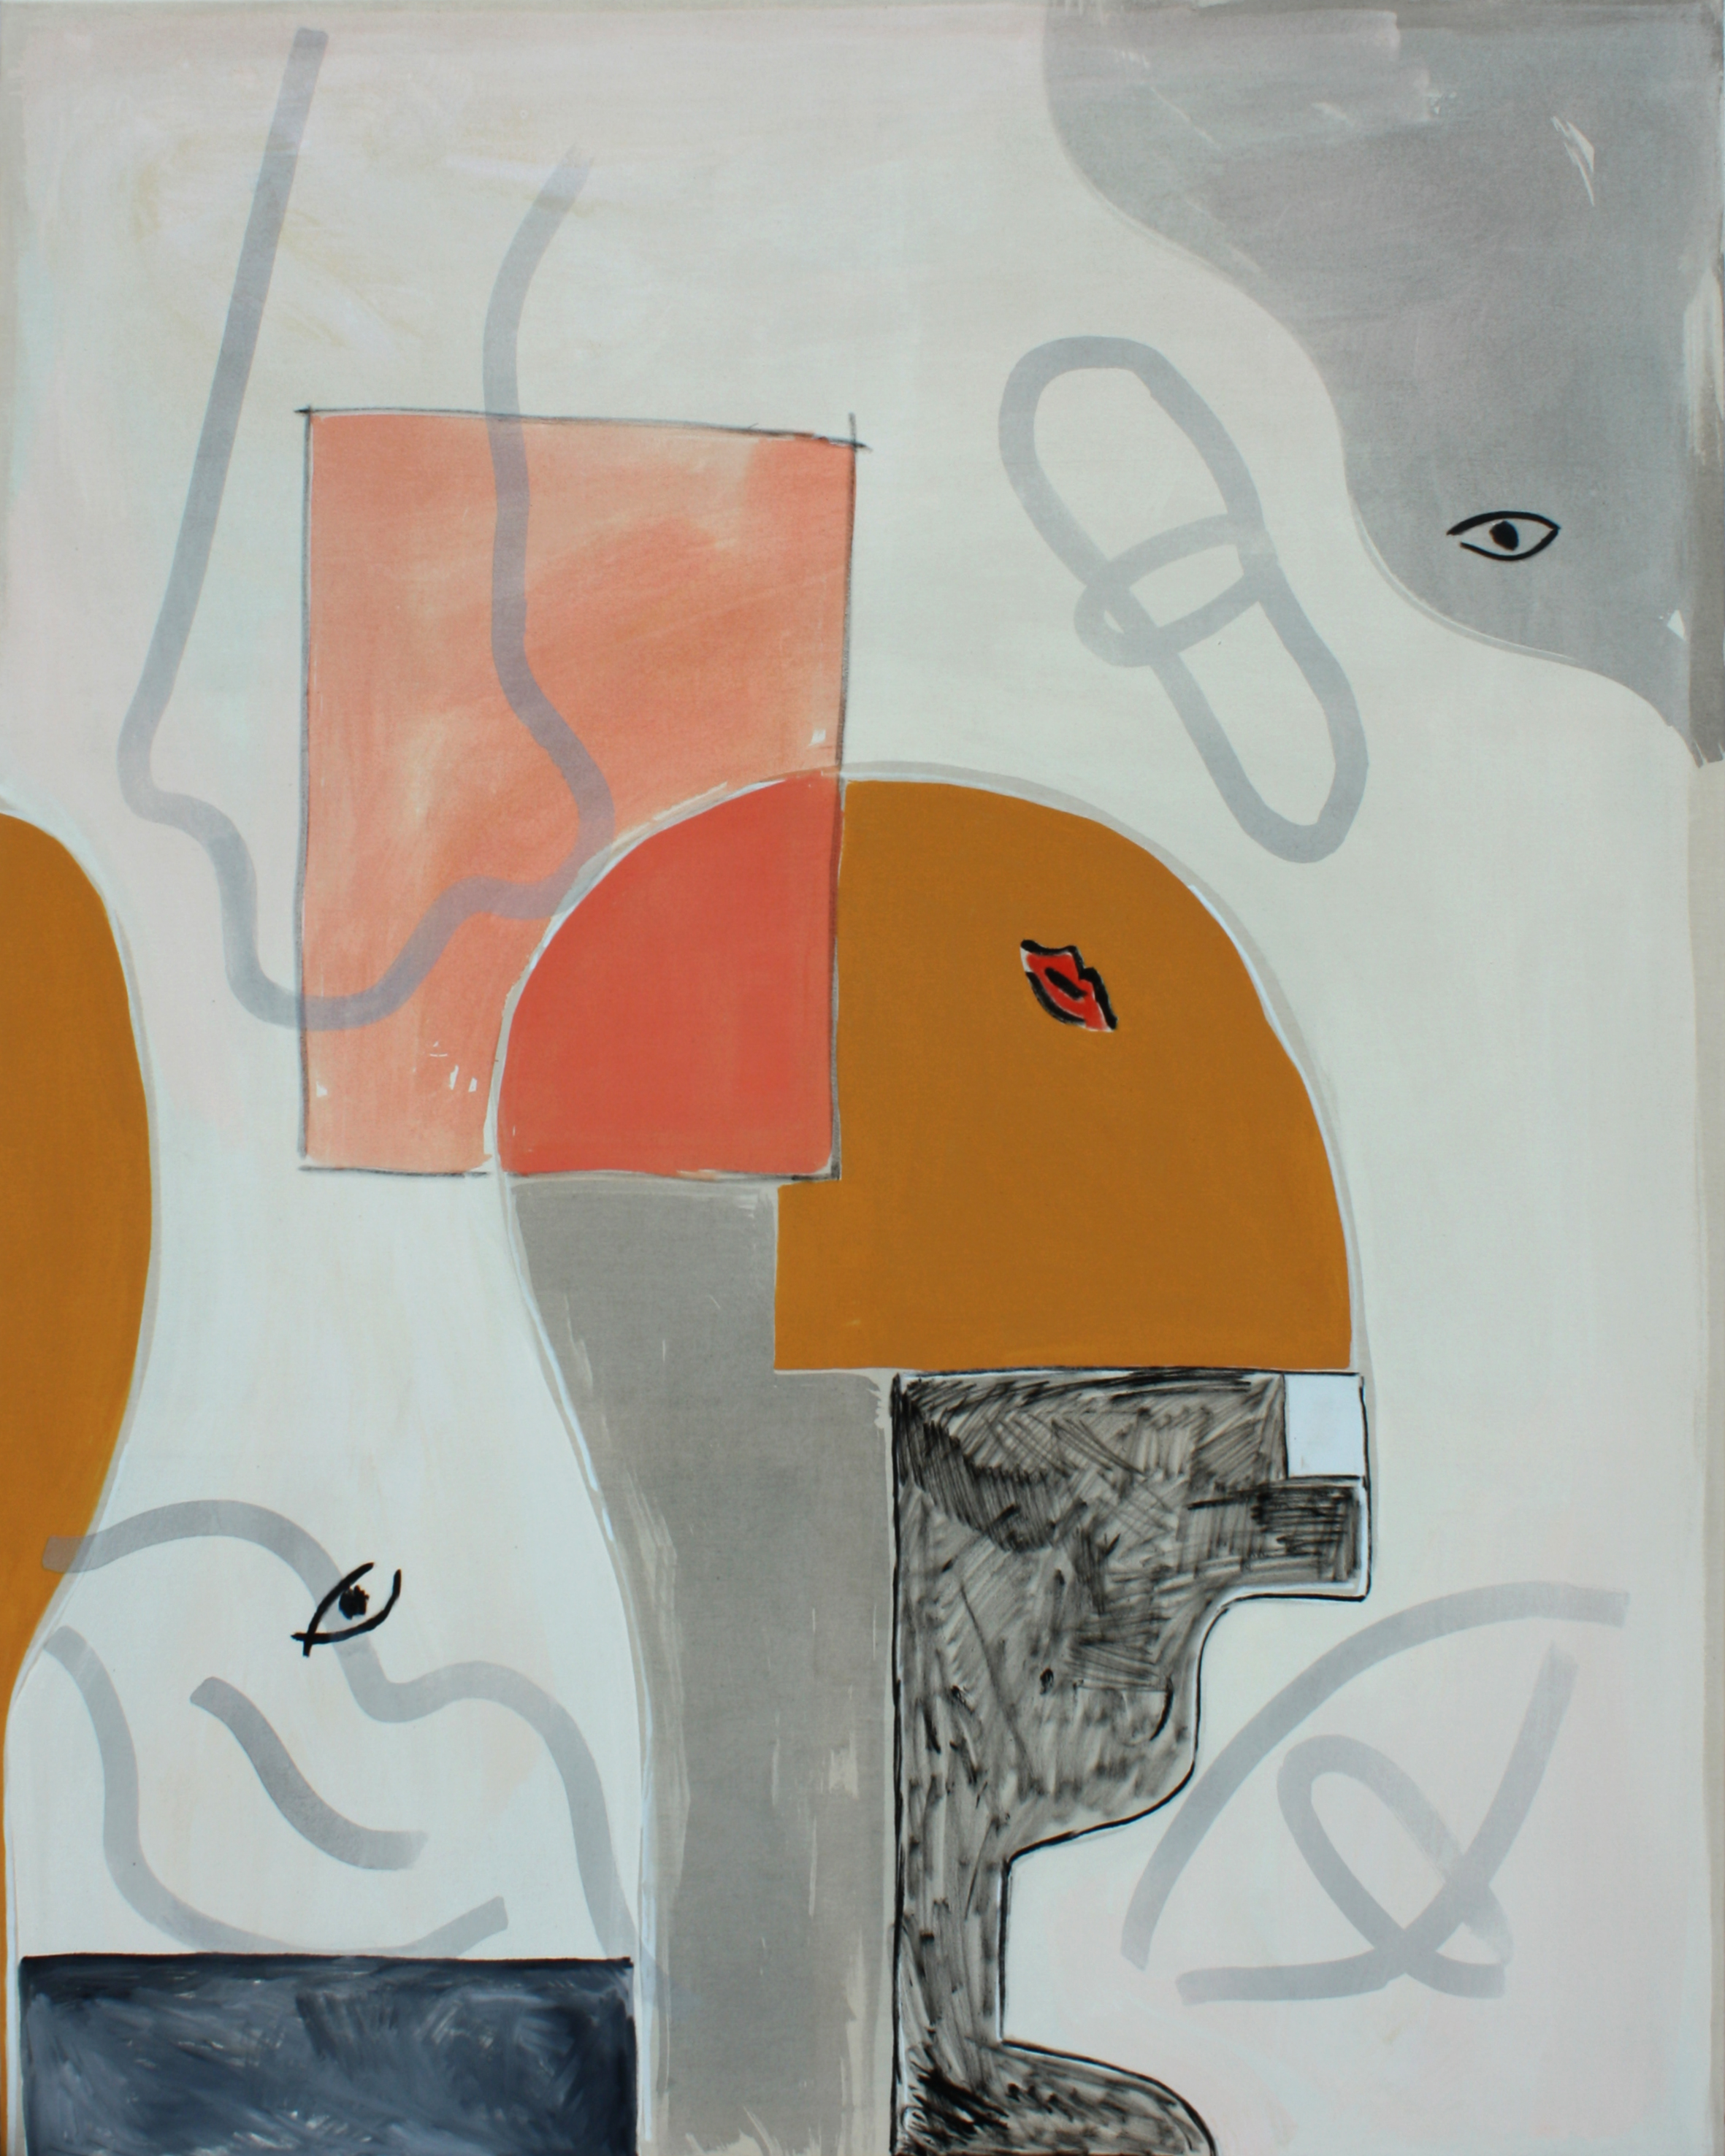 Not you, oil and acrylic on canvas, 150 x 120 cm